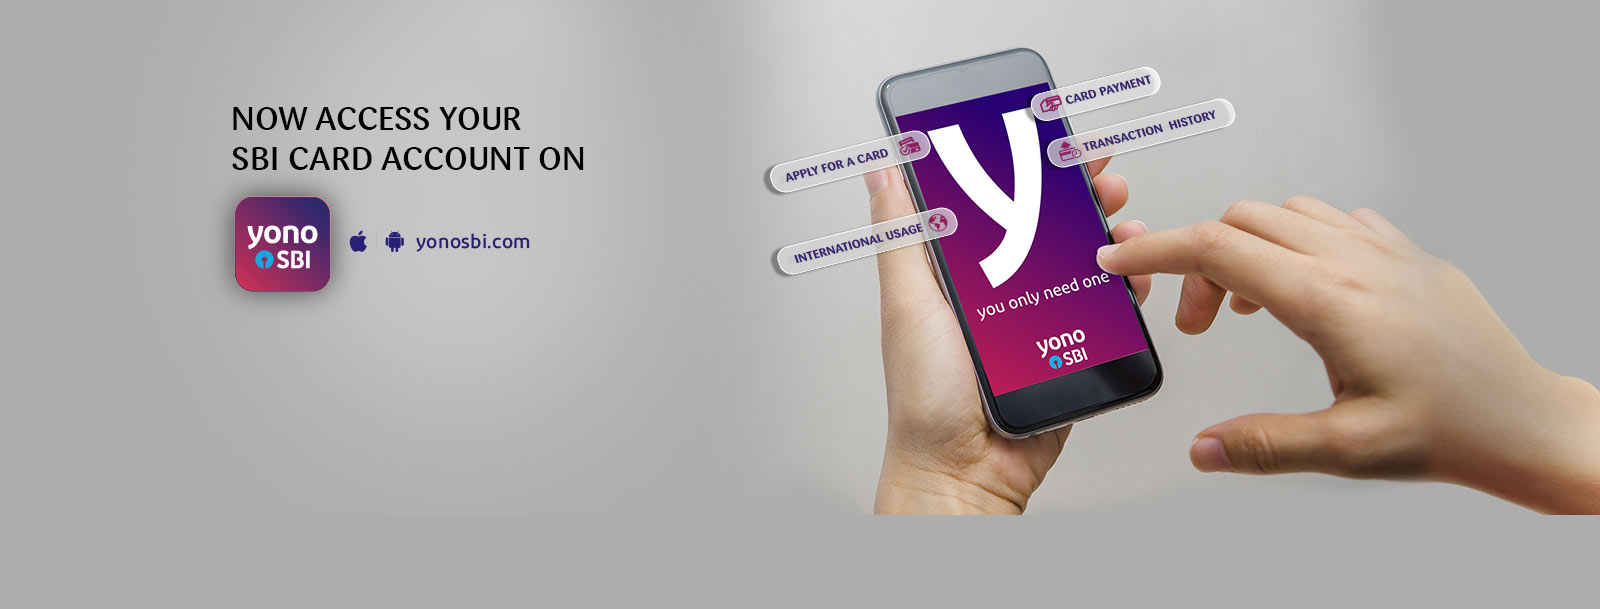 YONO SBI | YONO App - Download YONO SBI Mobile App | SBI Card